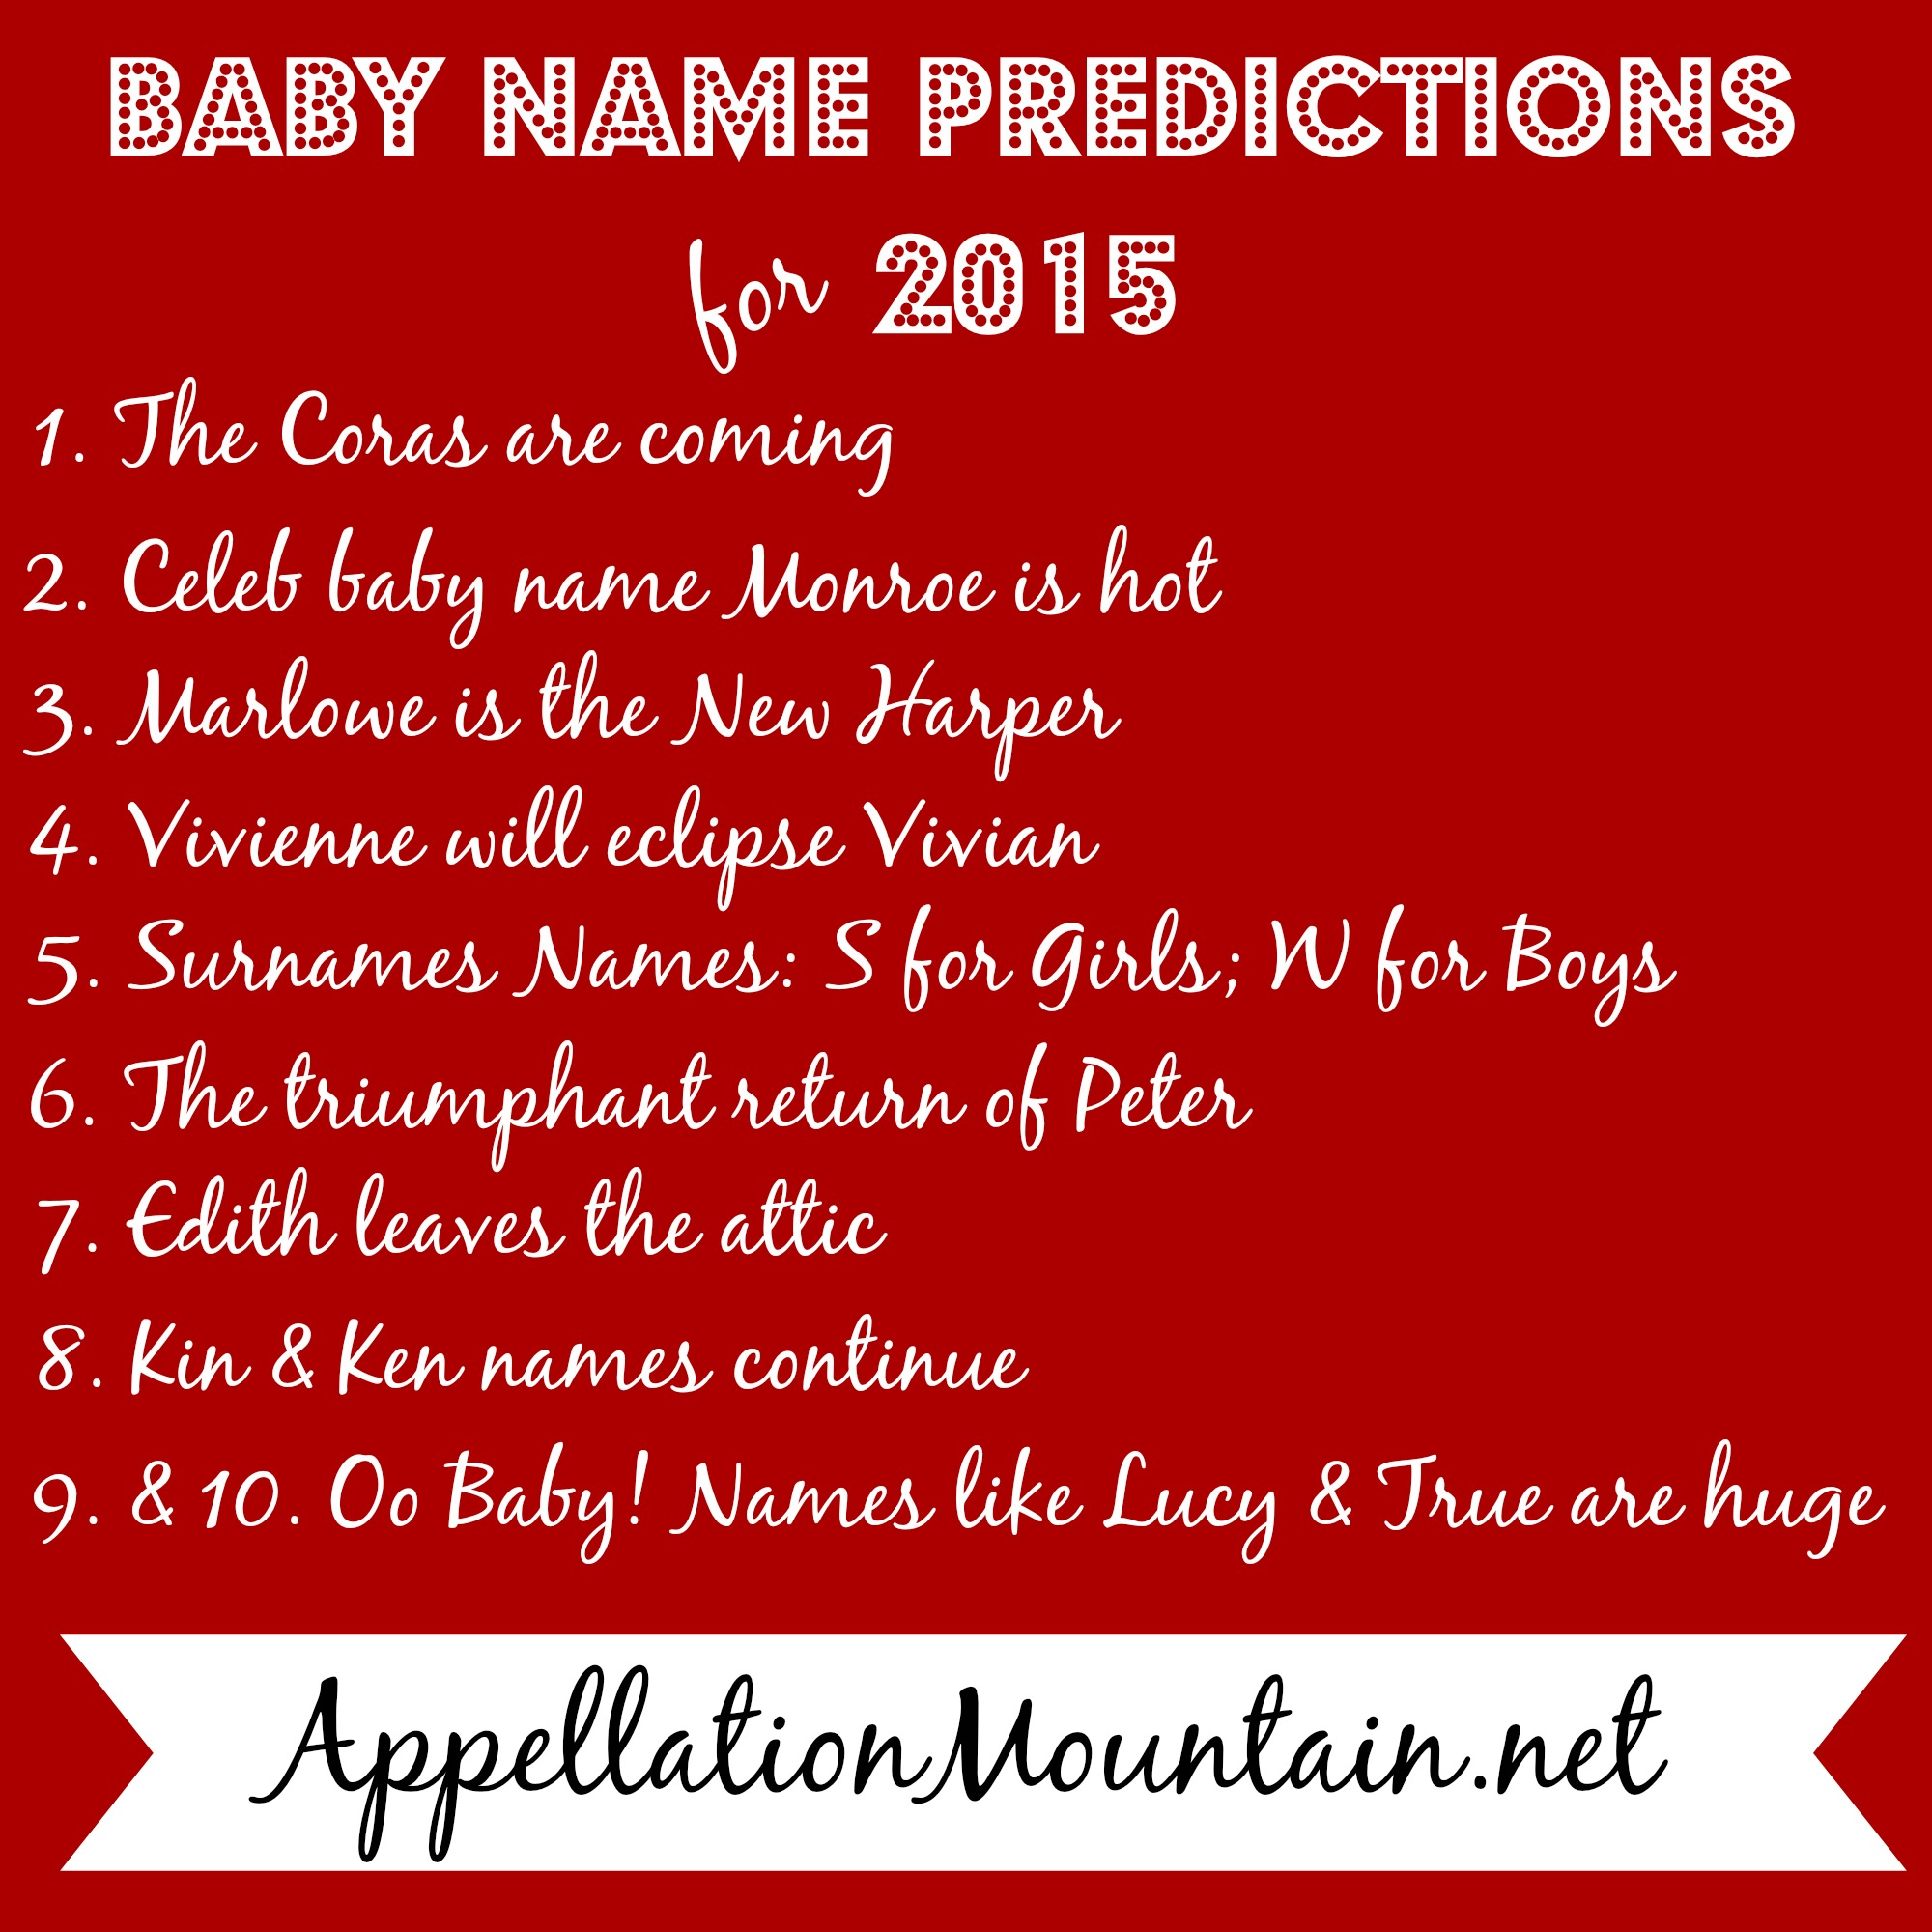 Baby Name Predictions 2015 Appellation Mountain